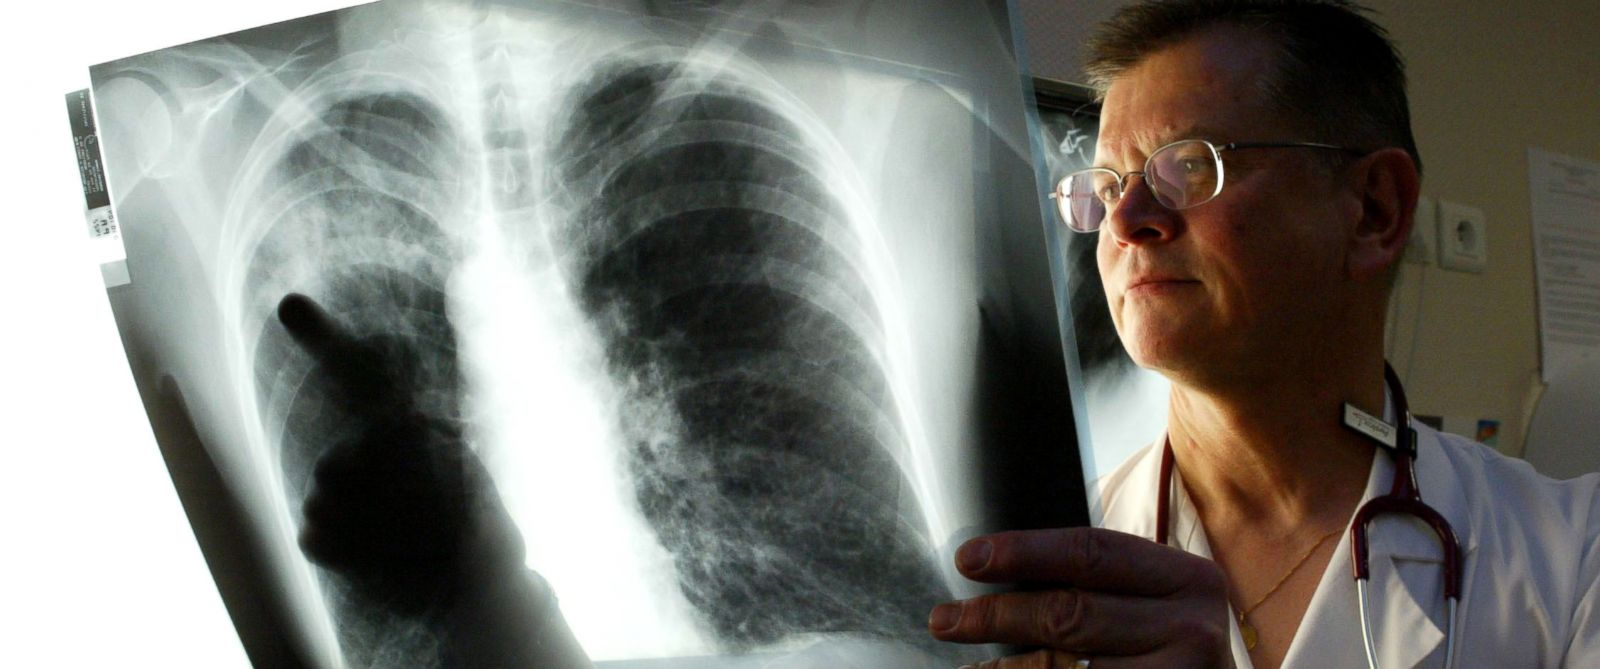 PHOTO: A French doctor looks at a patients x-ray at the Henin Beaumont hospital during a deadly outbreak of Legionnaires disease in northern France, Jan. 2, 2004.